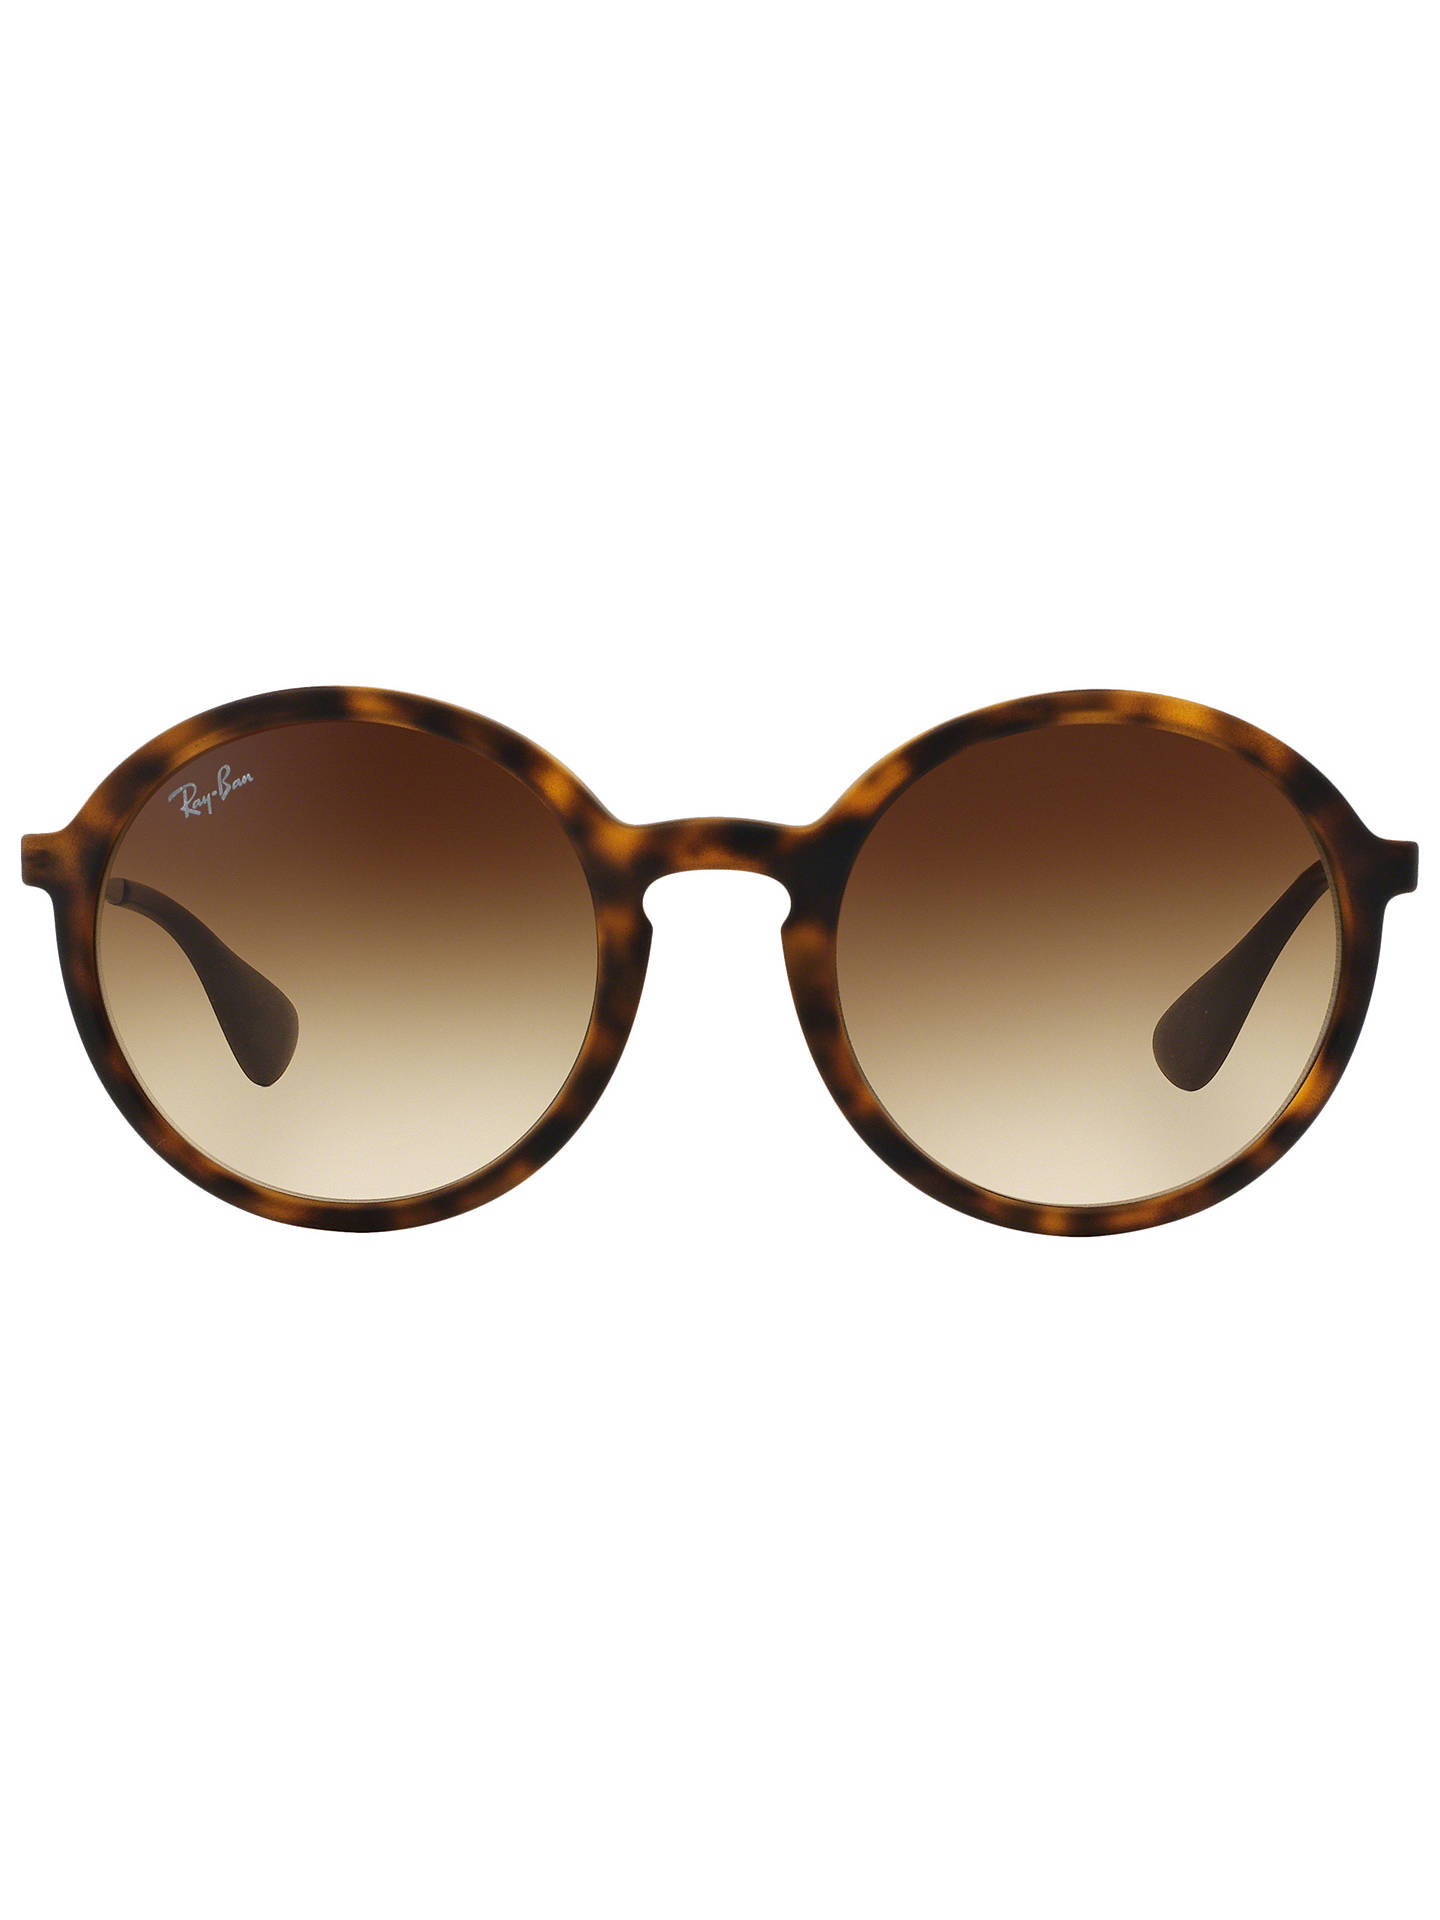 8d25ee0ae9b59 Ray-Ban RB4222 Oval Sunglasses at John Lewis   Partners